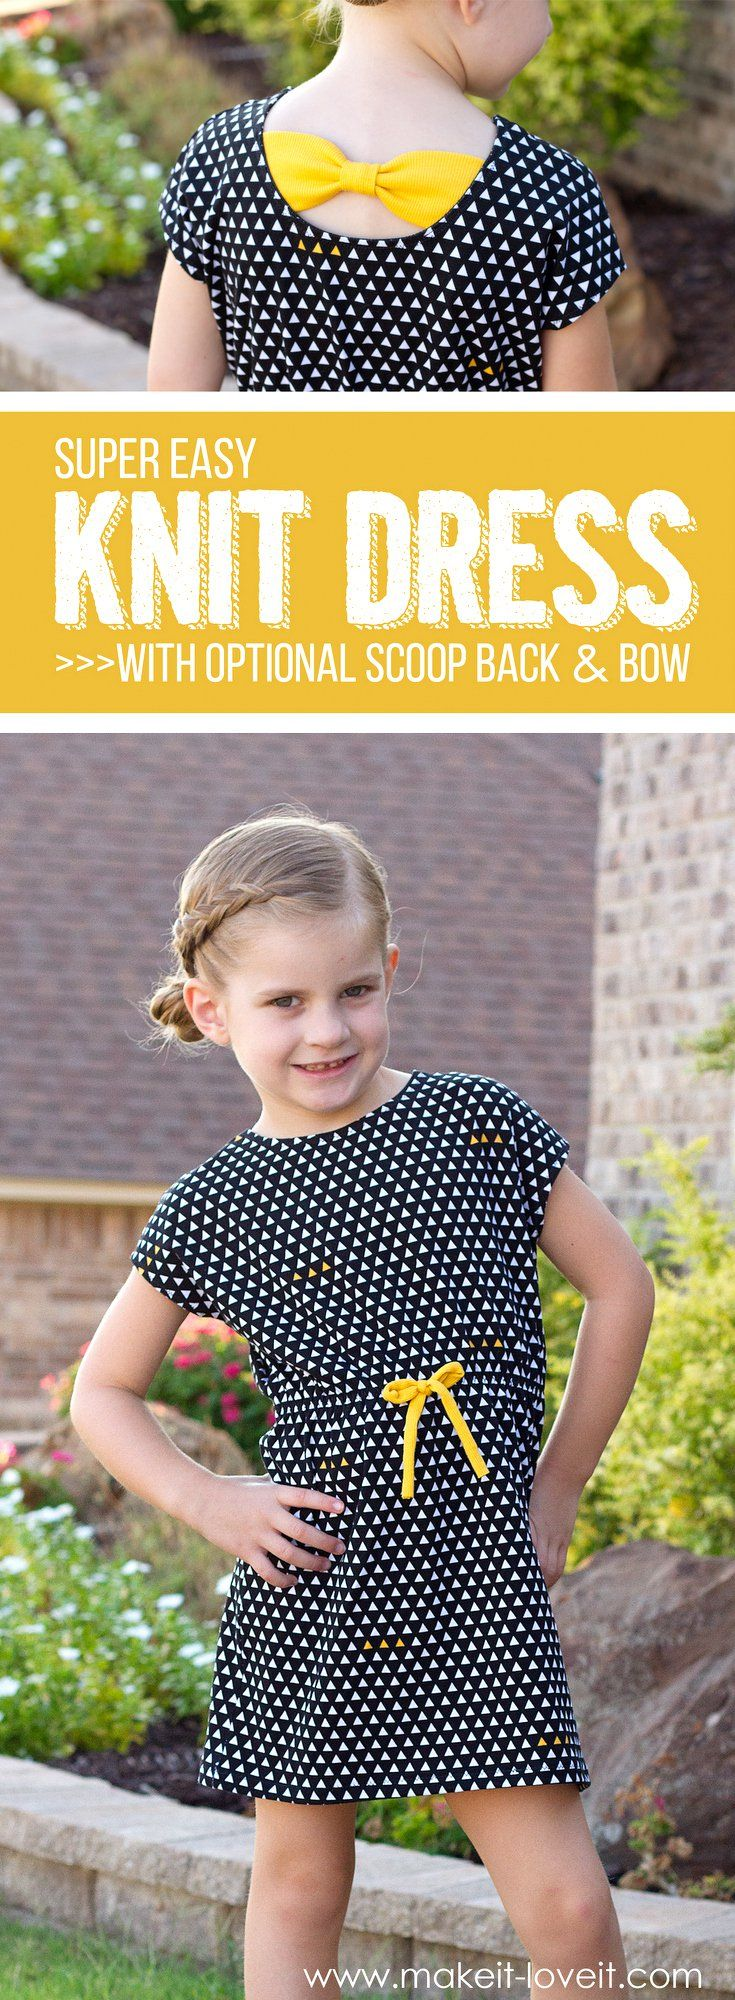 Super Easy Knit Dress...with optional Scoop Back and Bow! | via www.makeit-loveit.com